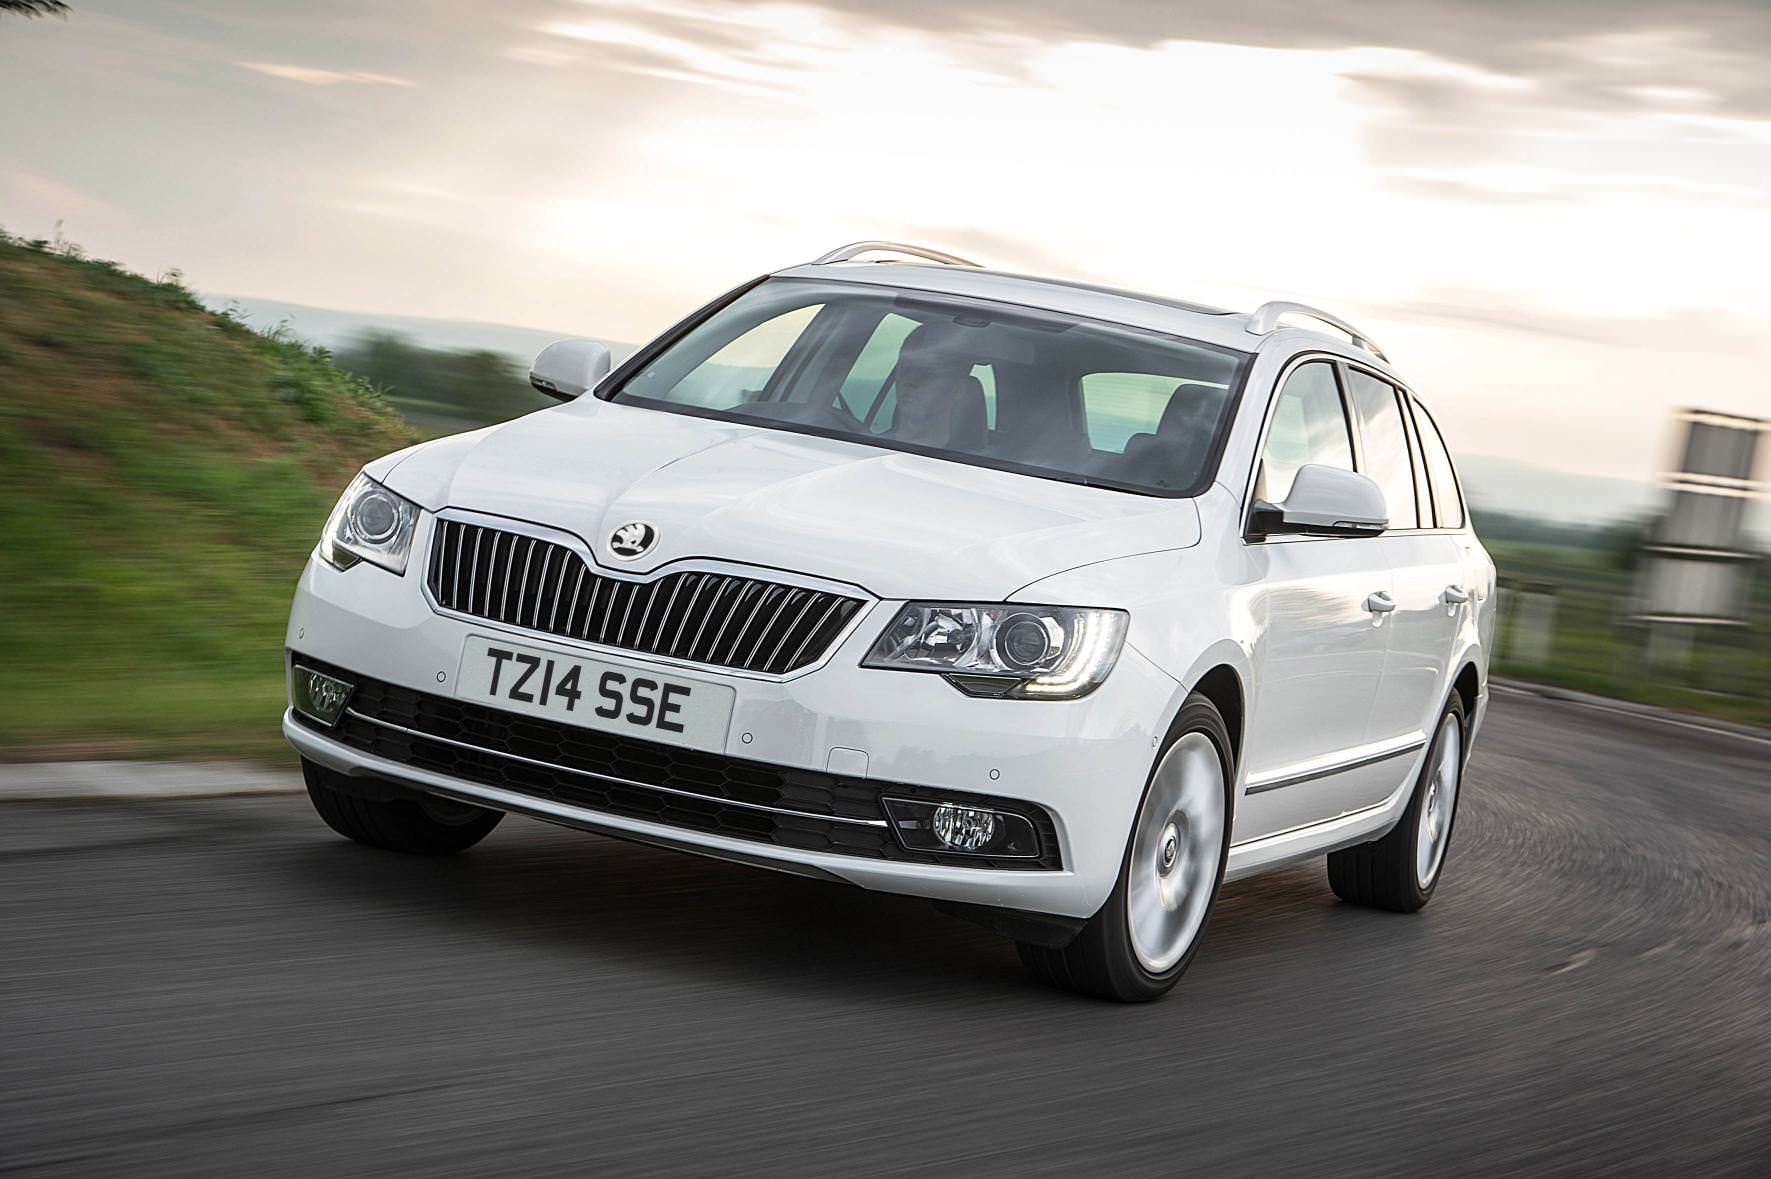 image of a white skoda superb car exterior